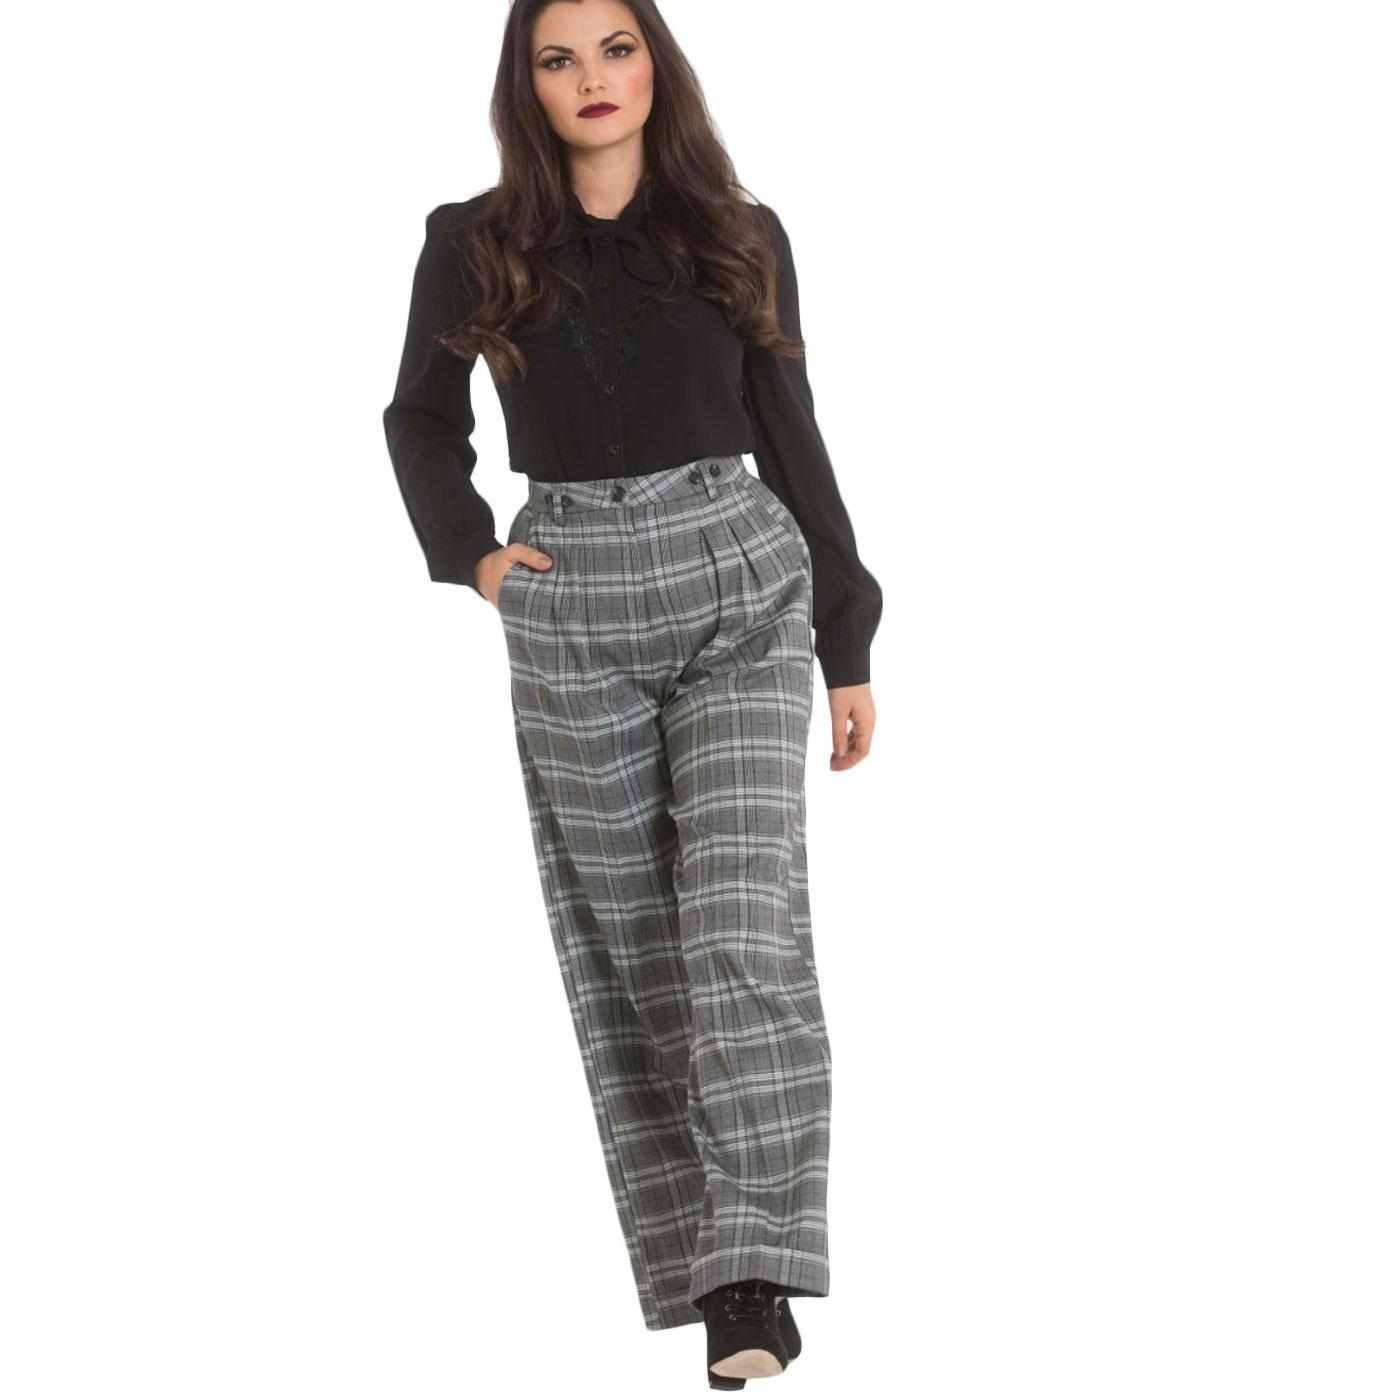 Frostine HELL BUNNY Retro 50s Plaid Swing Trousers